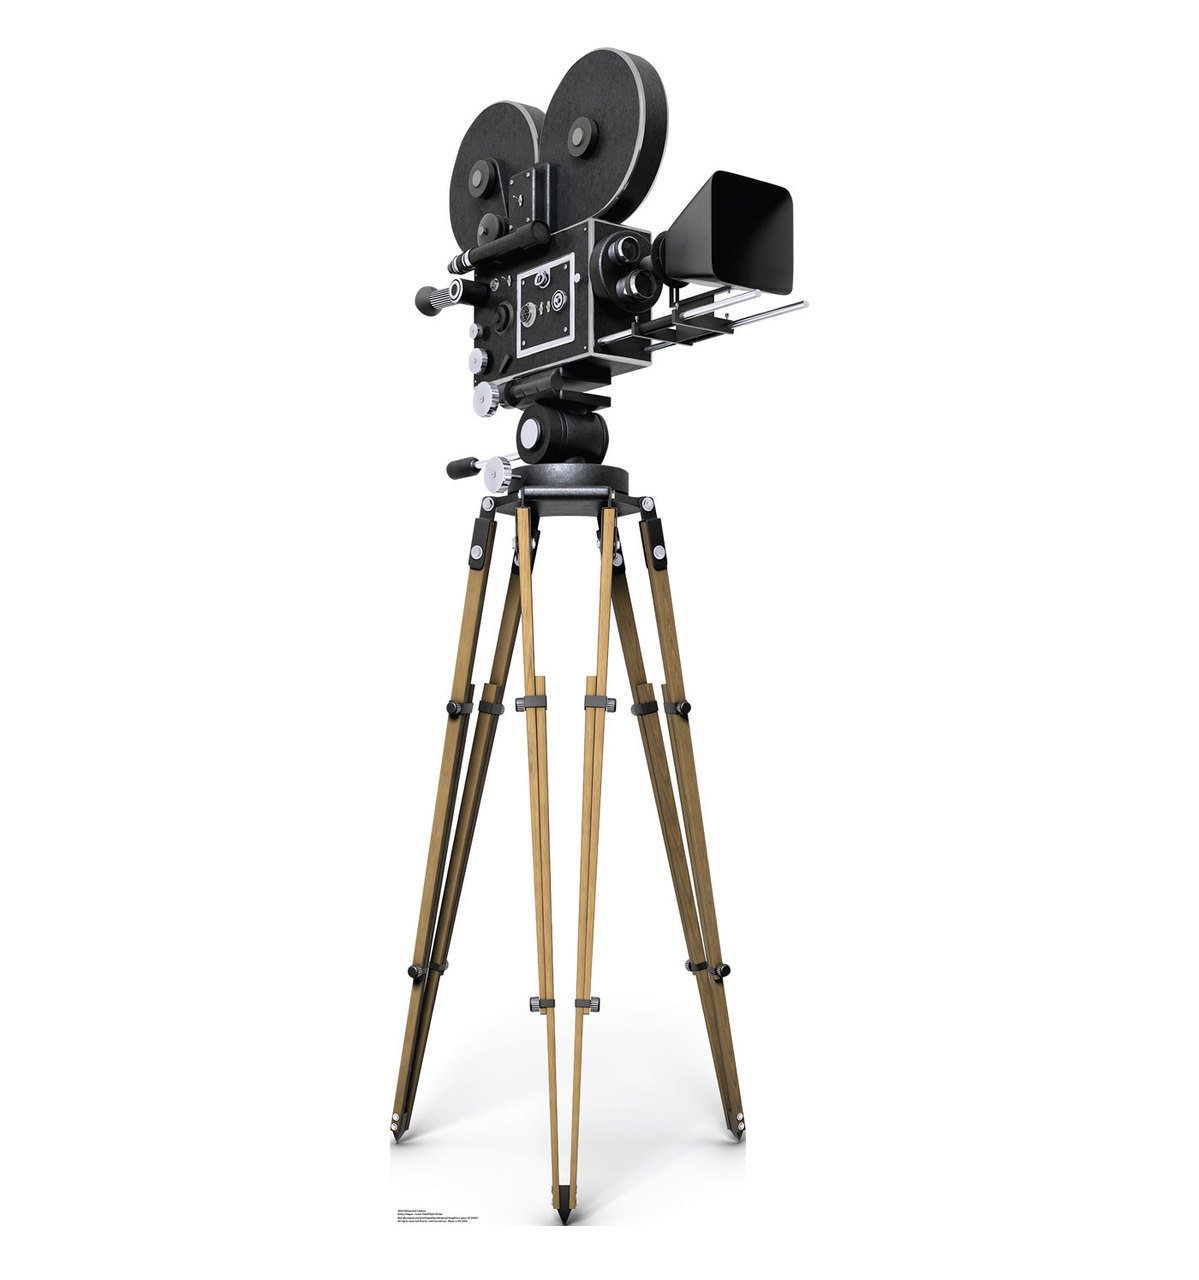 Hollywood Camera - Advanced Graphics Life Size Cardboard Standup